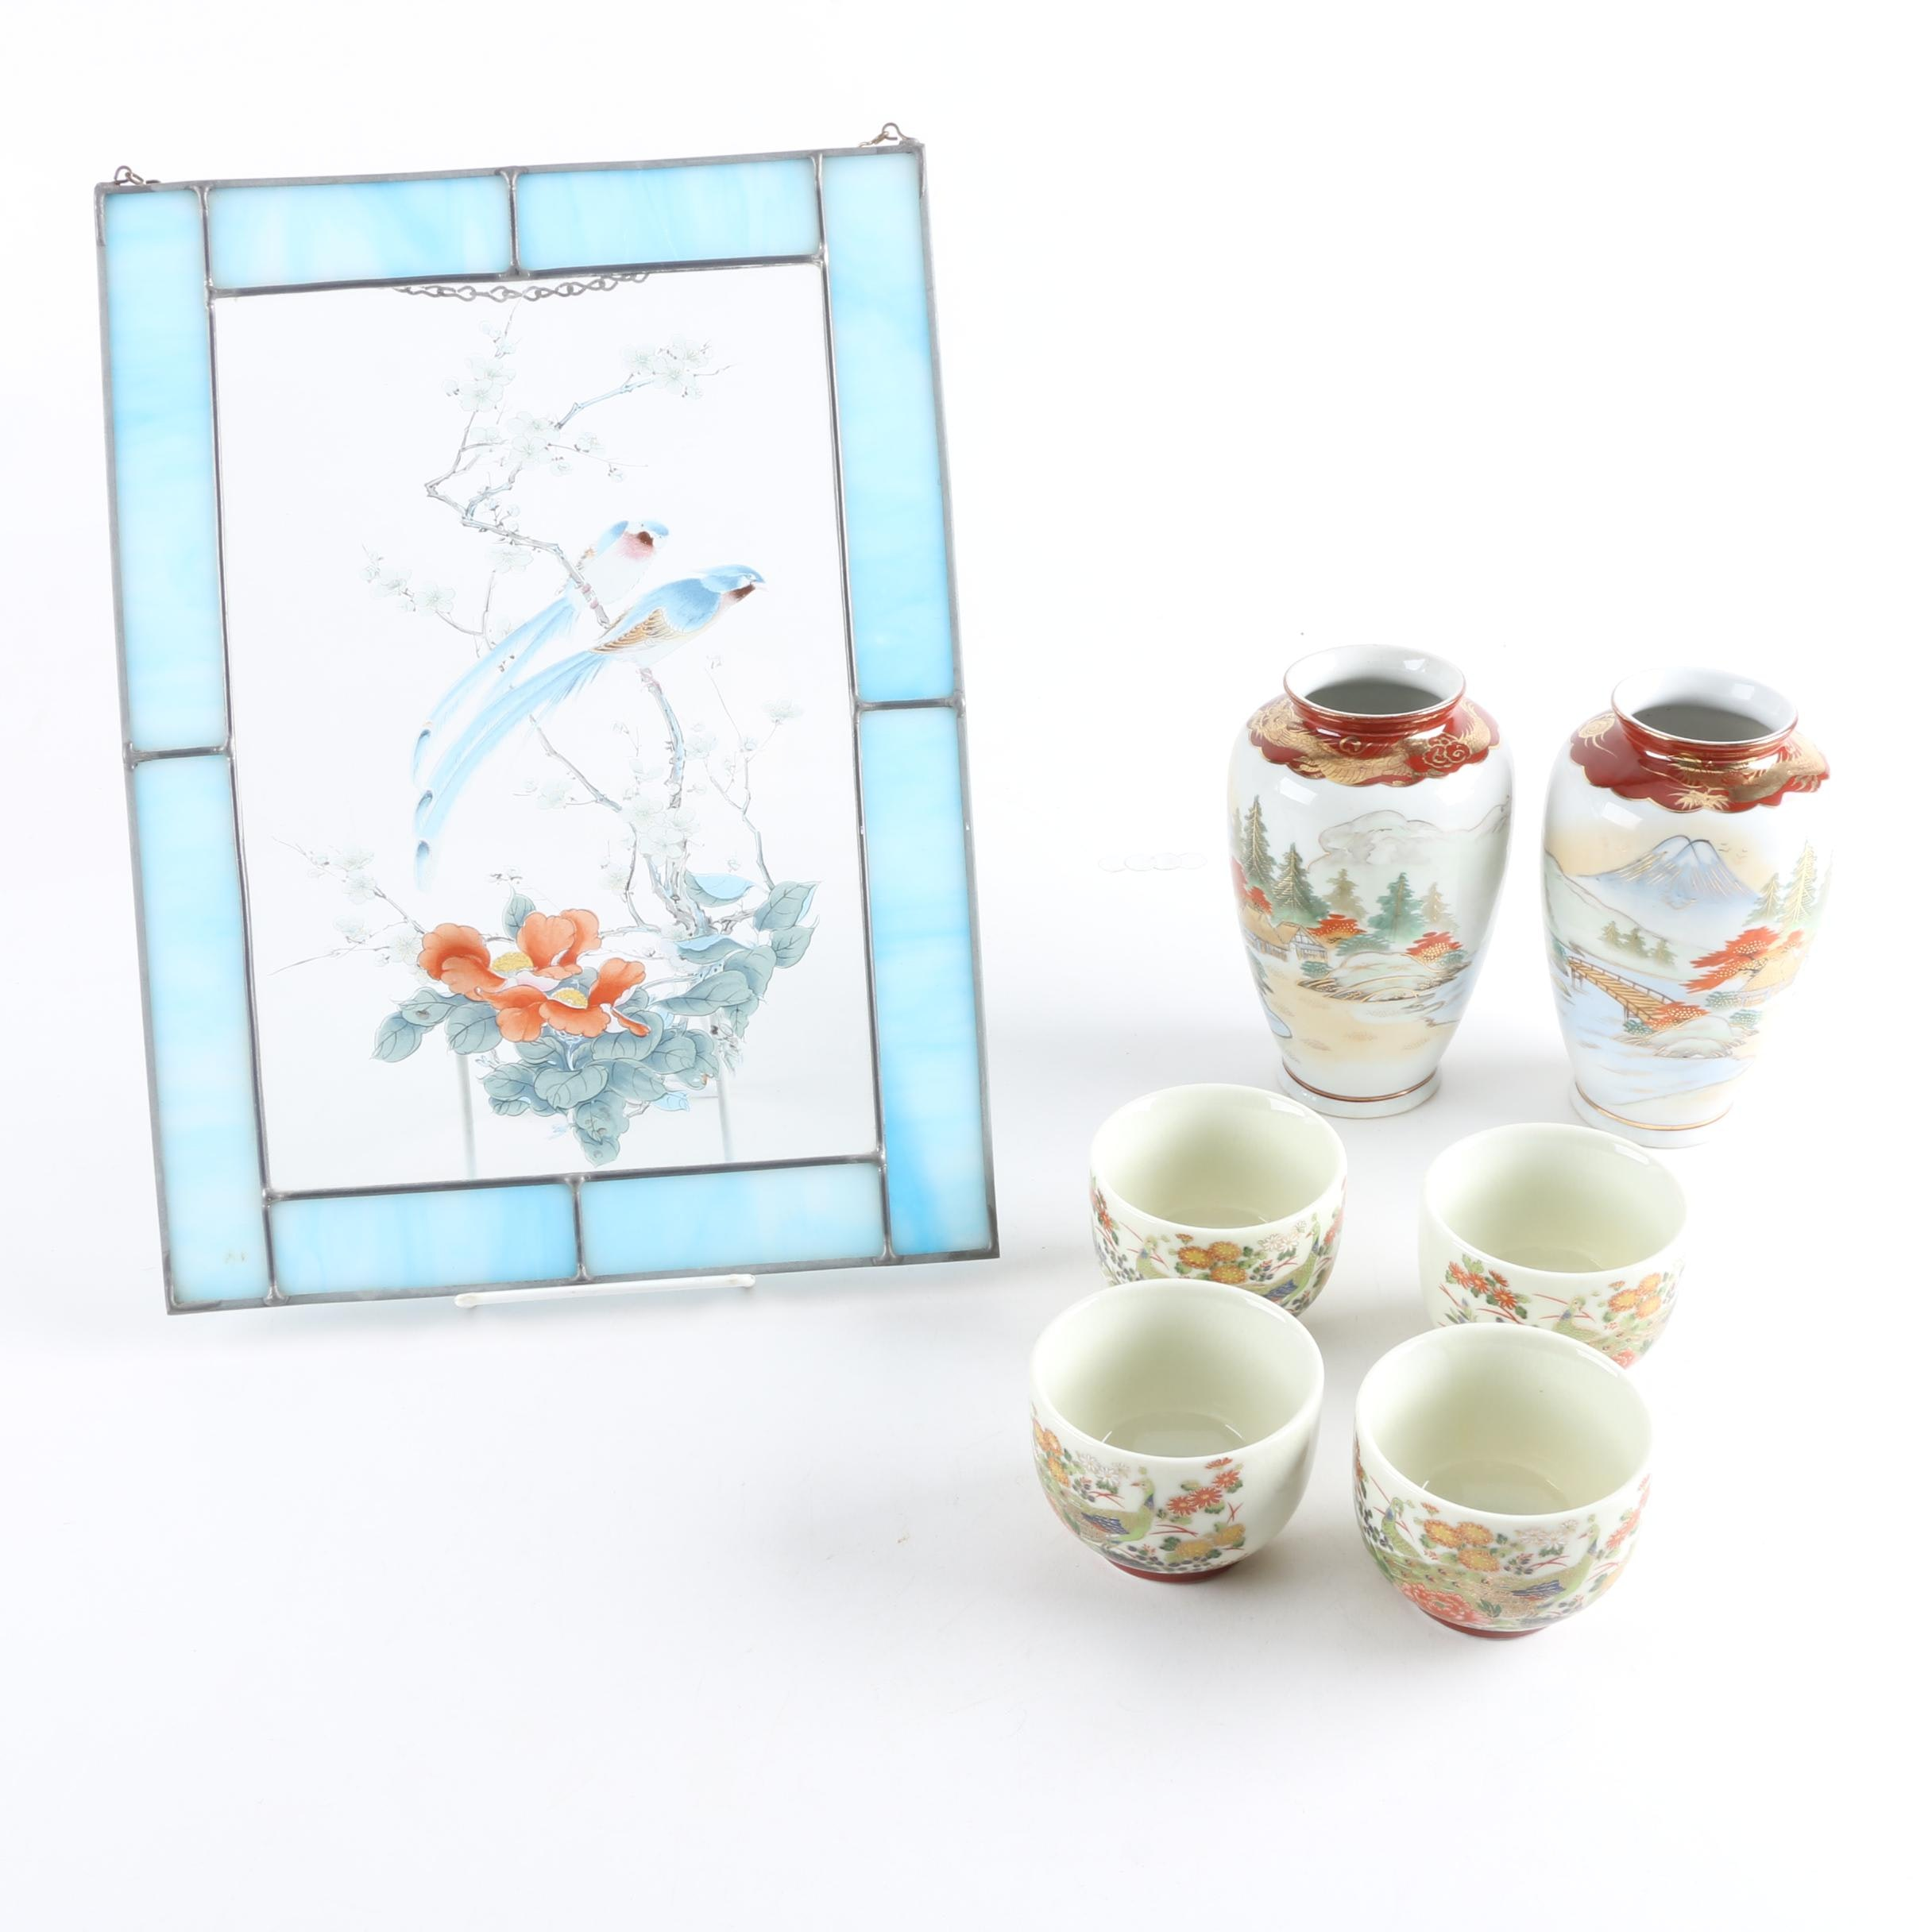 East Asian Household Décor Including Stained Glass Panel and Ceramics